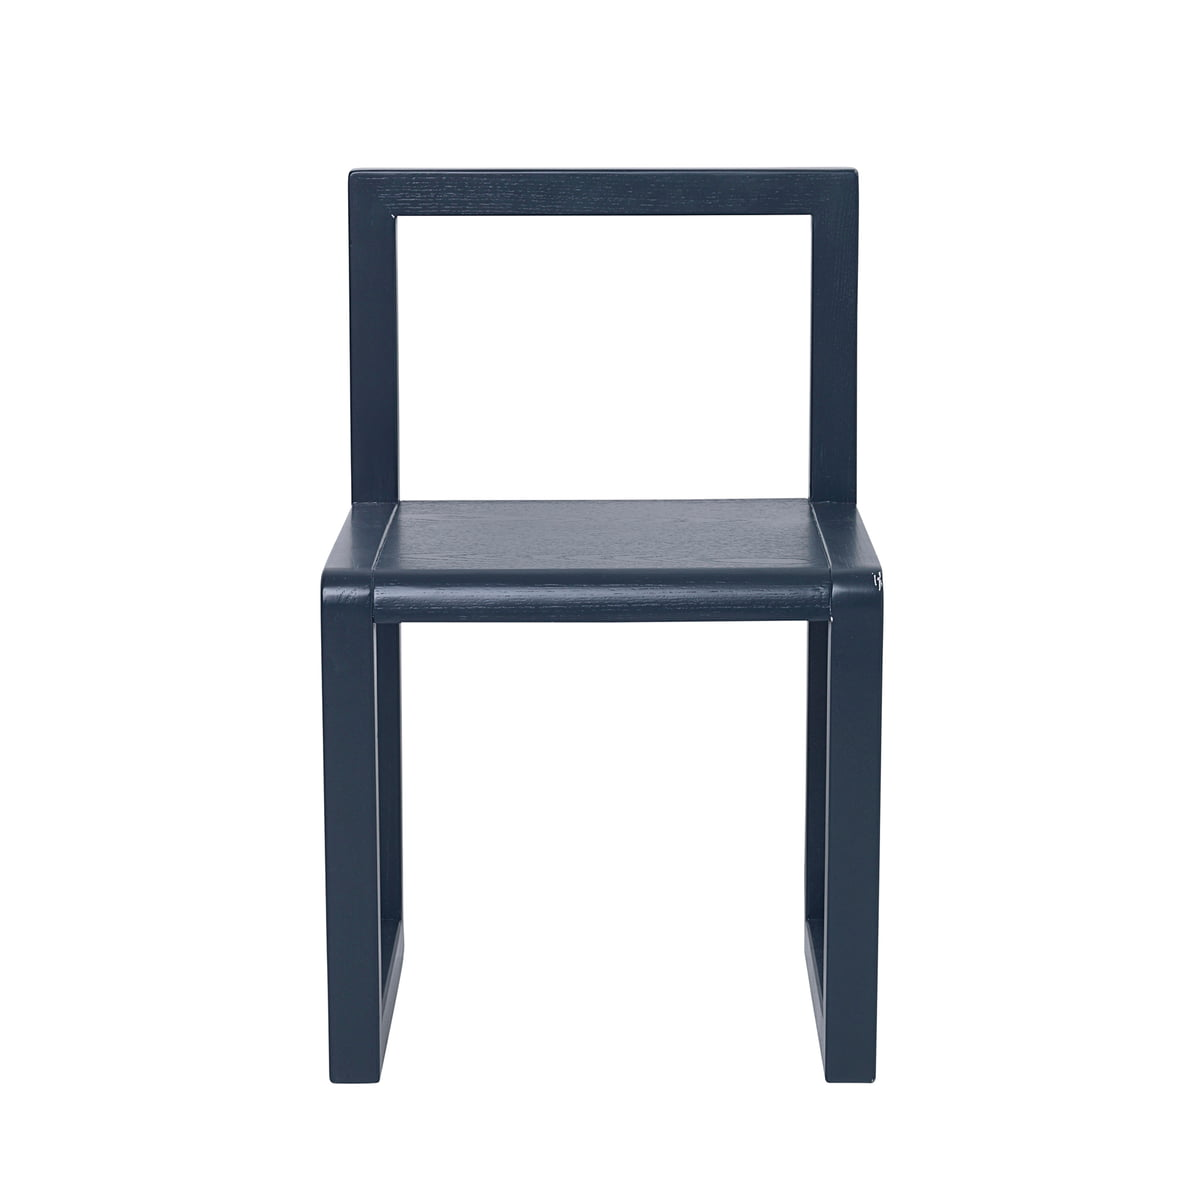 Buy Little Architect Chair By Ferm Living